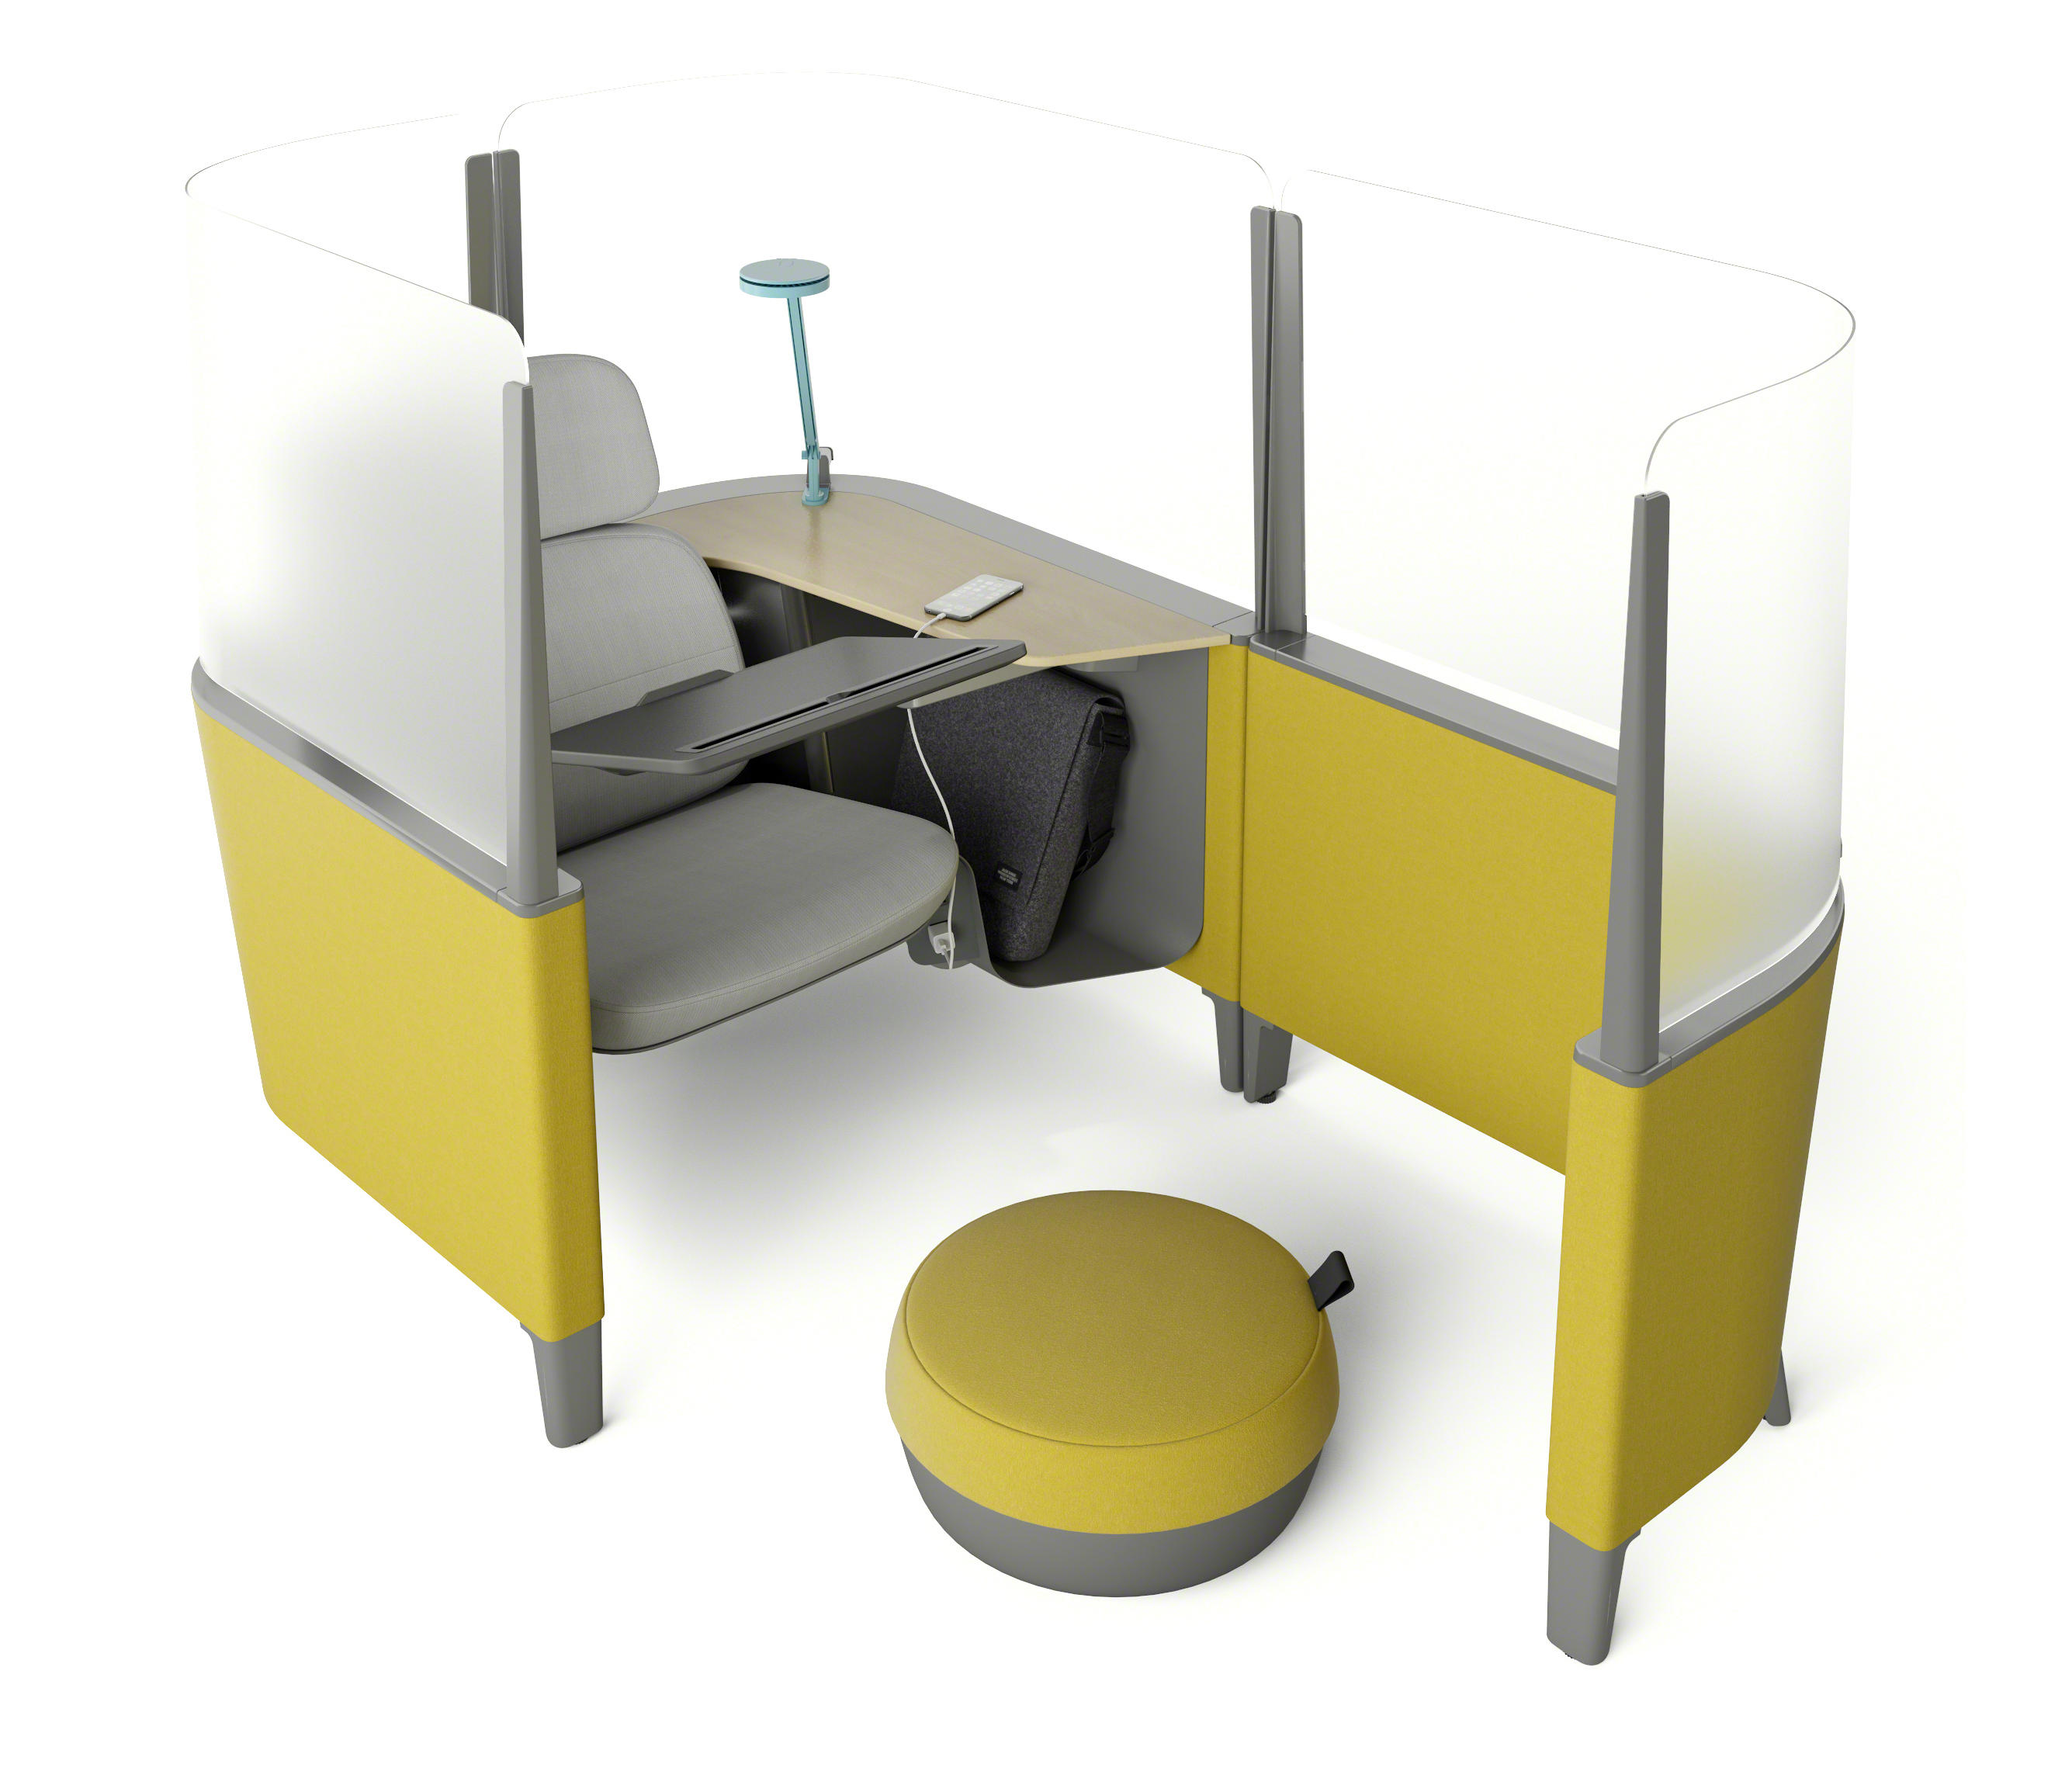 Brody Lounge Office Pods From Steelcase Architonic